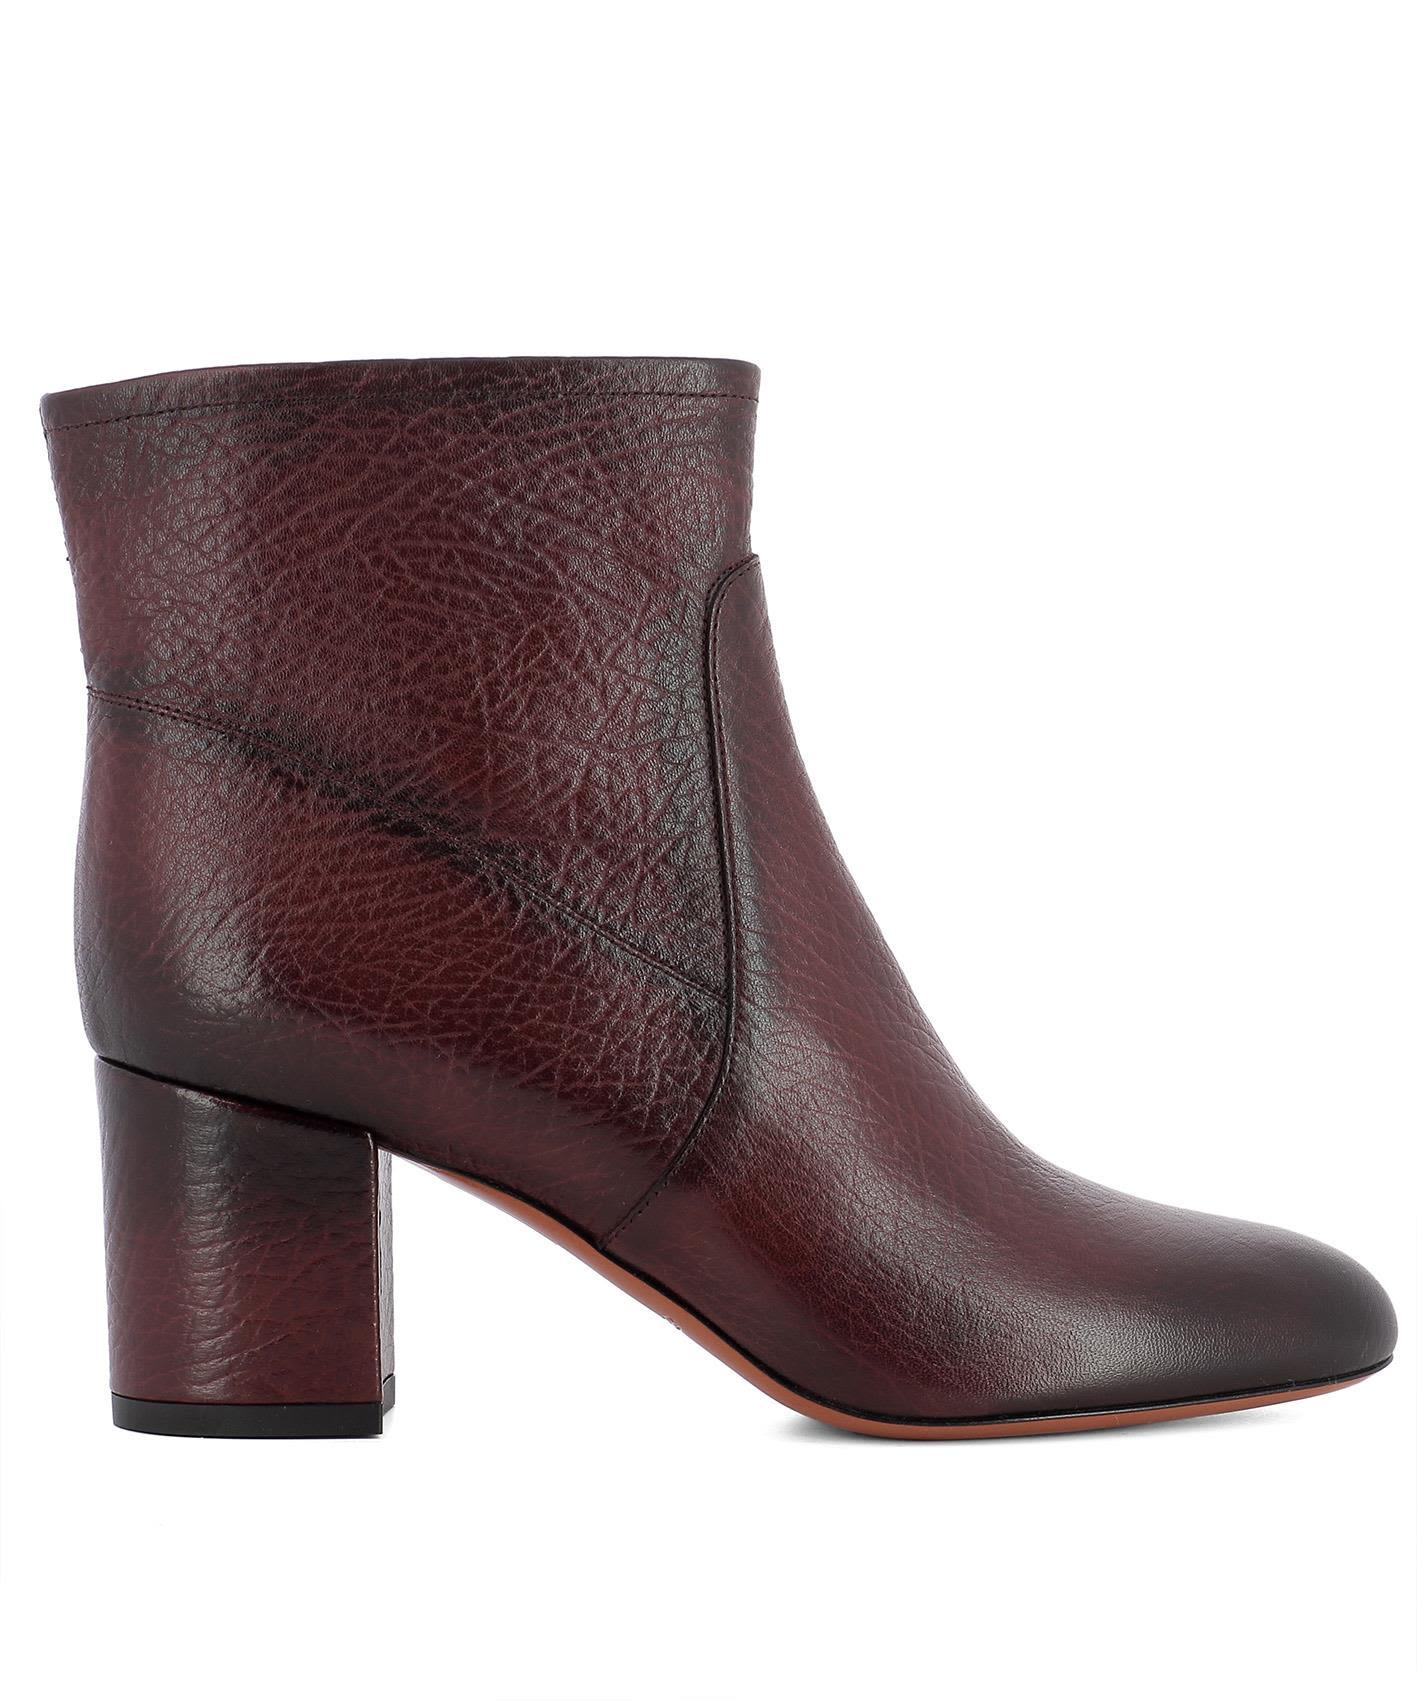 Santoni Bordeaux Leather Ankle Boots In Red